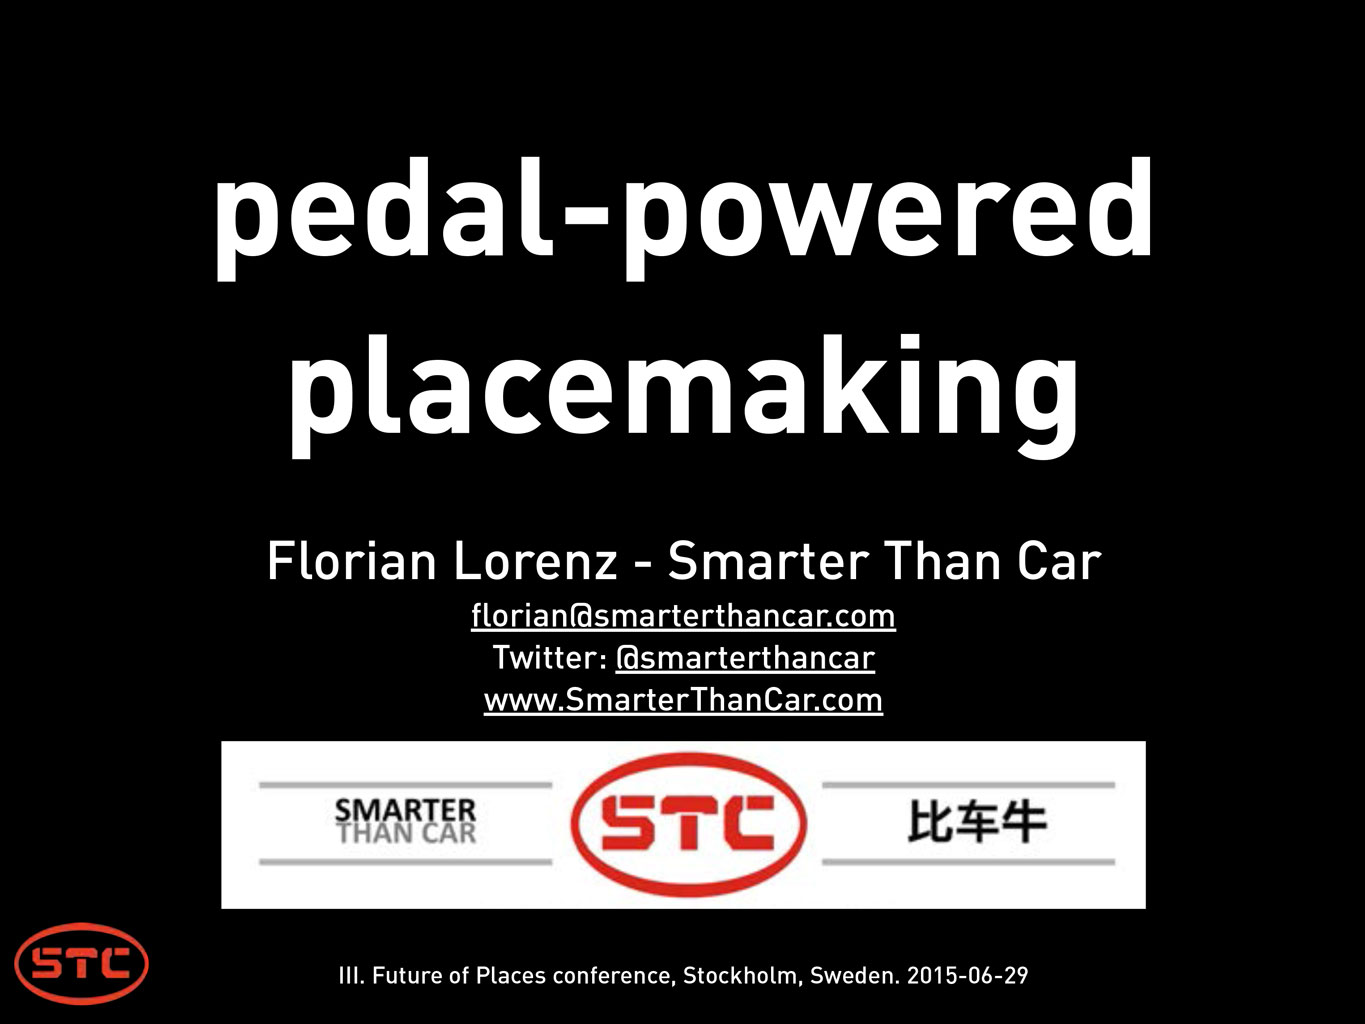 2015_Smarter-Than-Car_Pedal-powered-Placemaking—Presentation-at-Future-of-Places-III_20150629